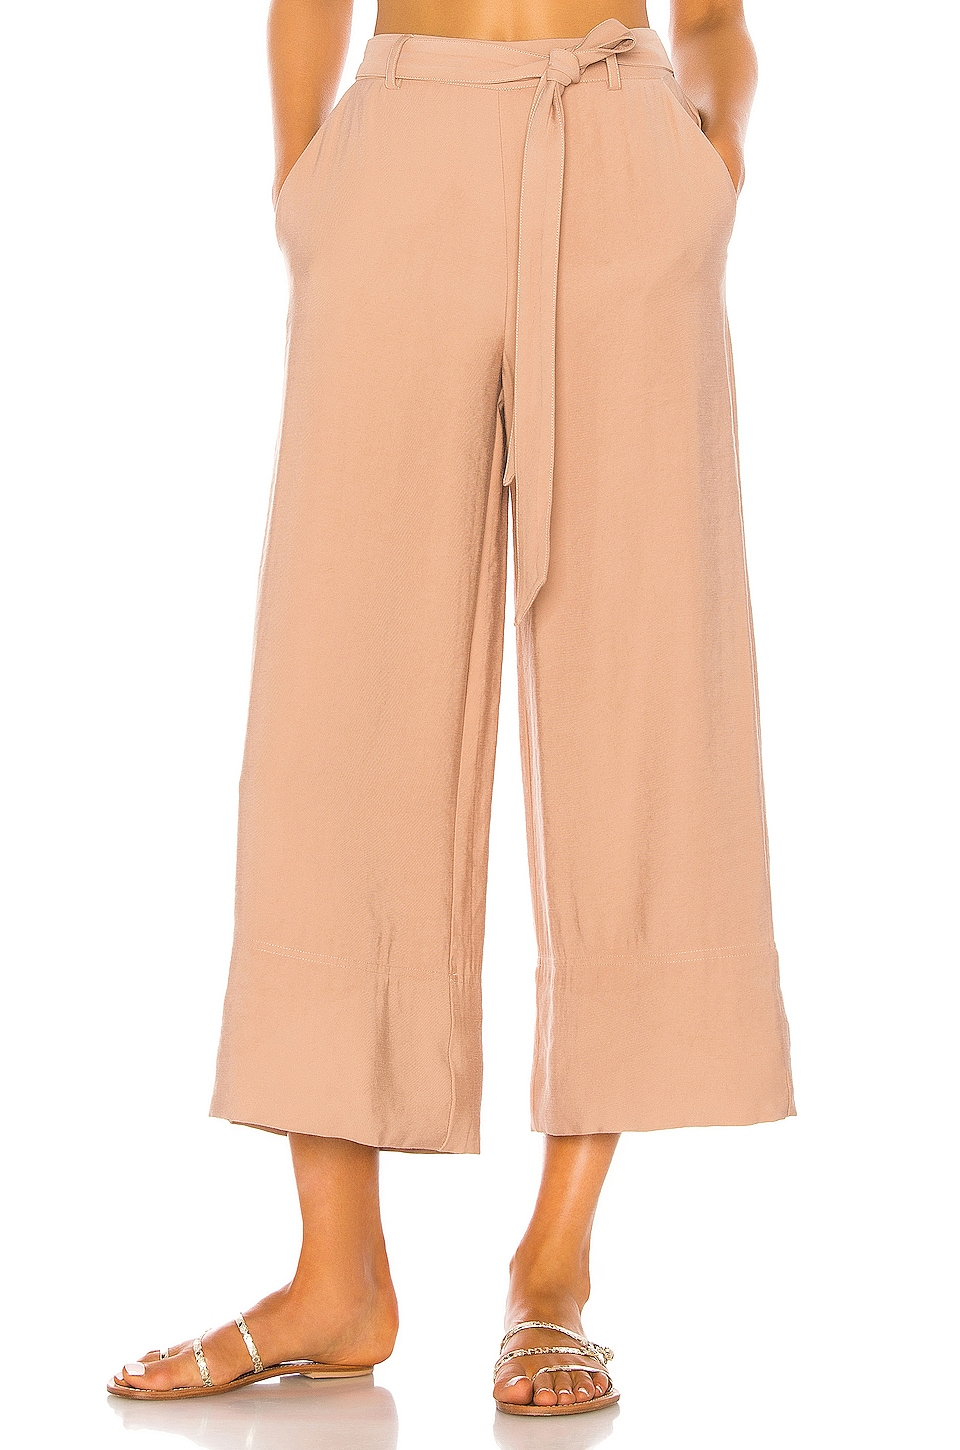 Shaycation x REVOLVE Lola Pant in Taupe